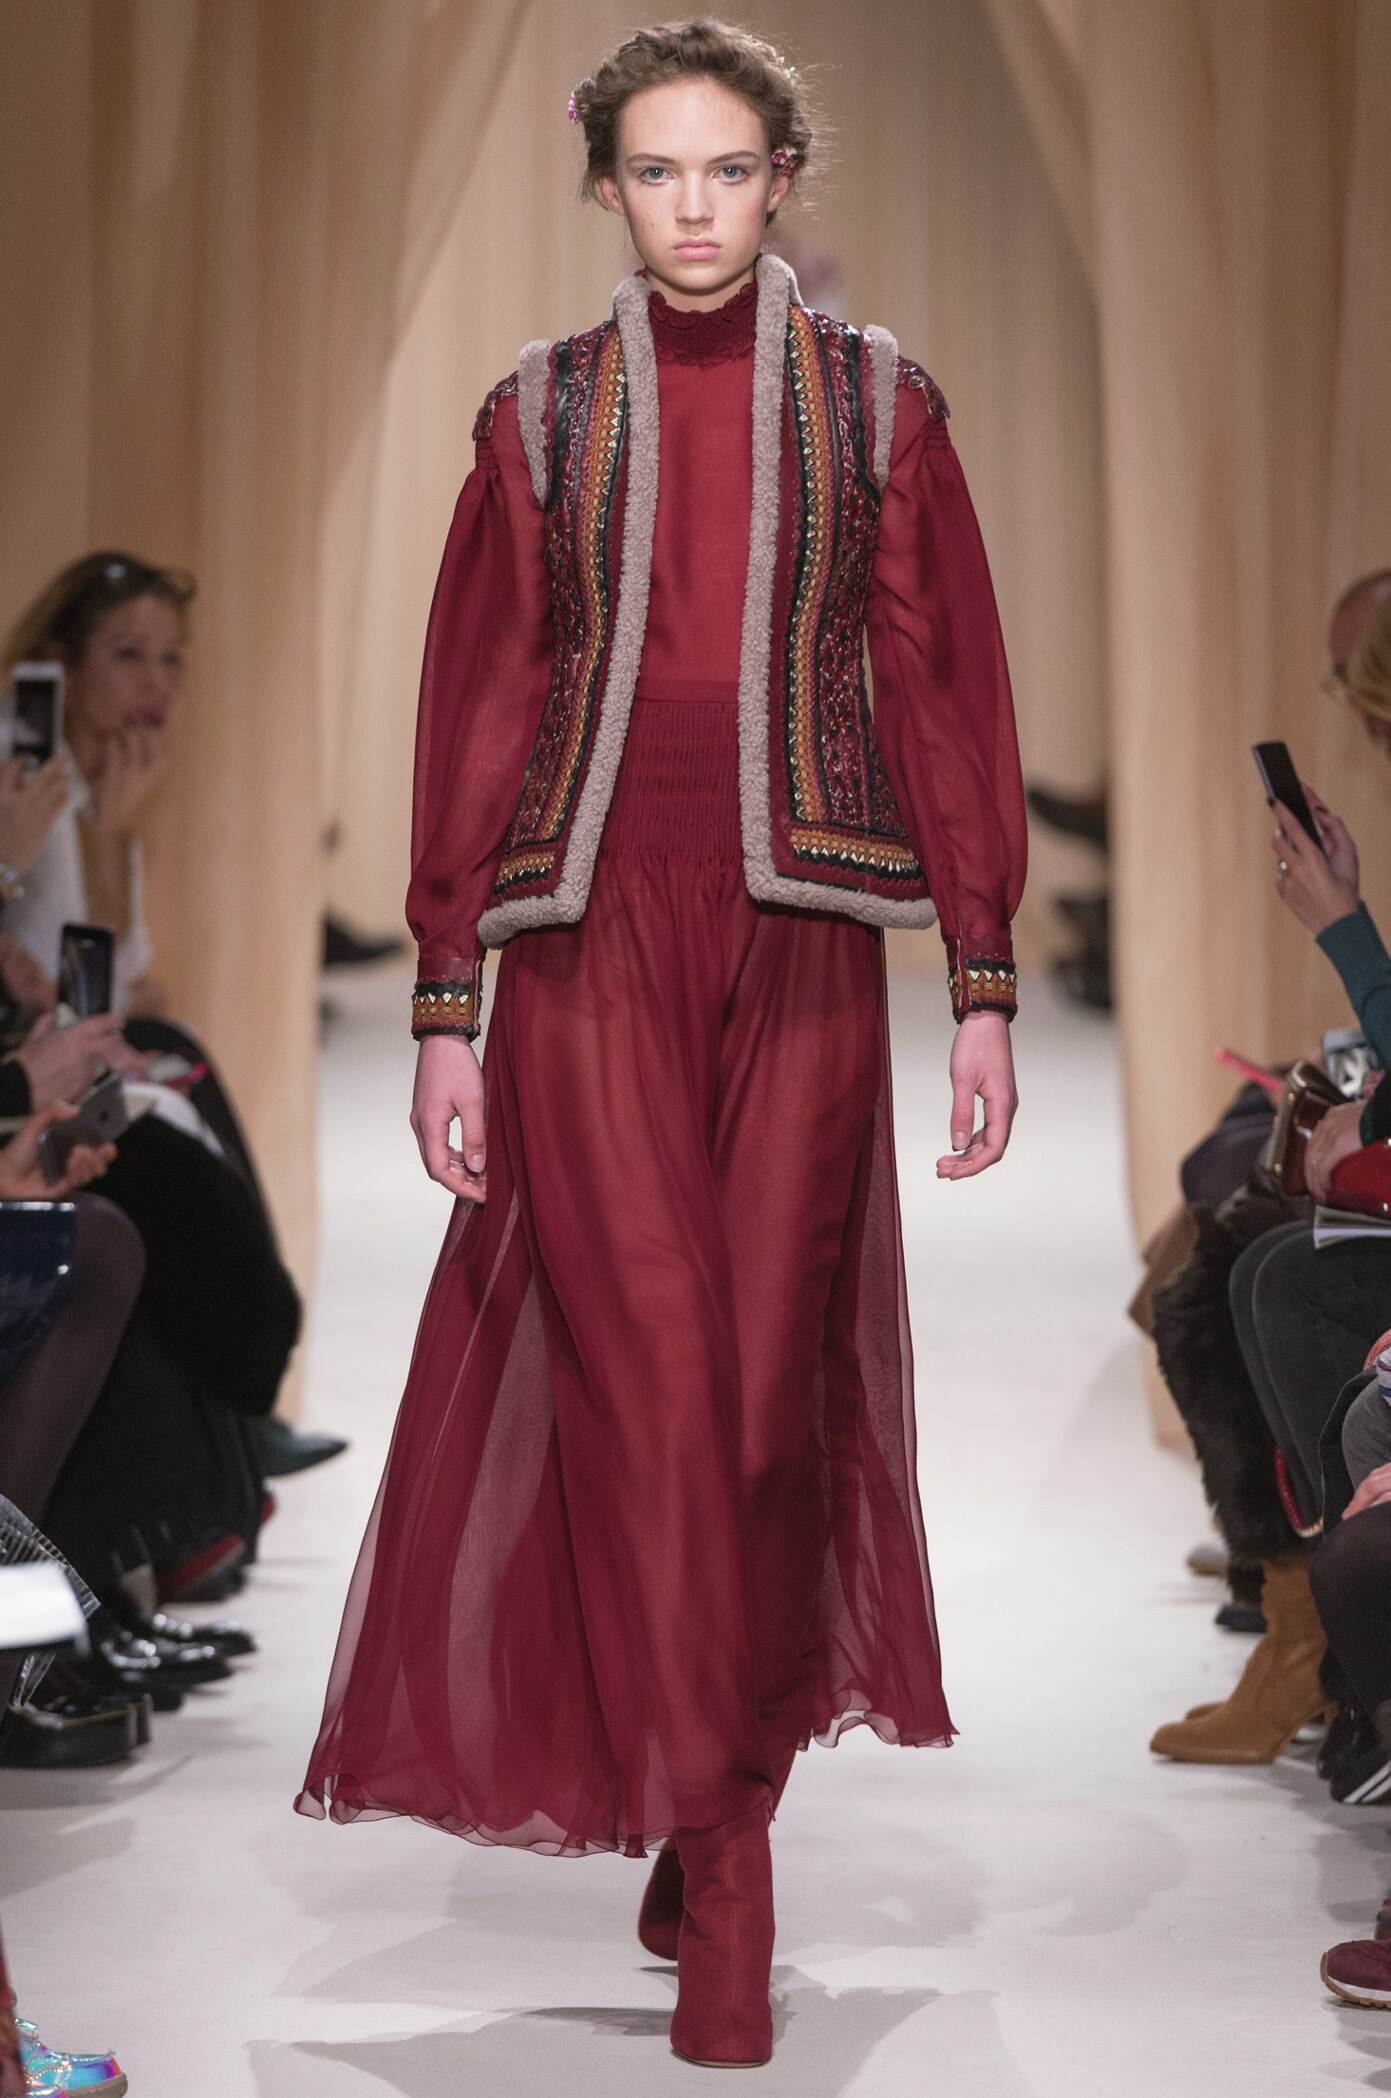 Summer 2015 Fashion Show Valentino Haute Couture Collection